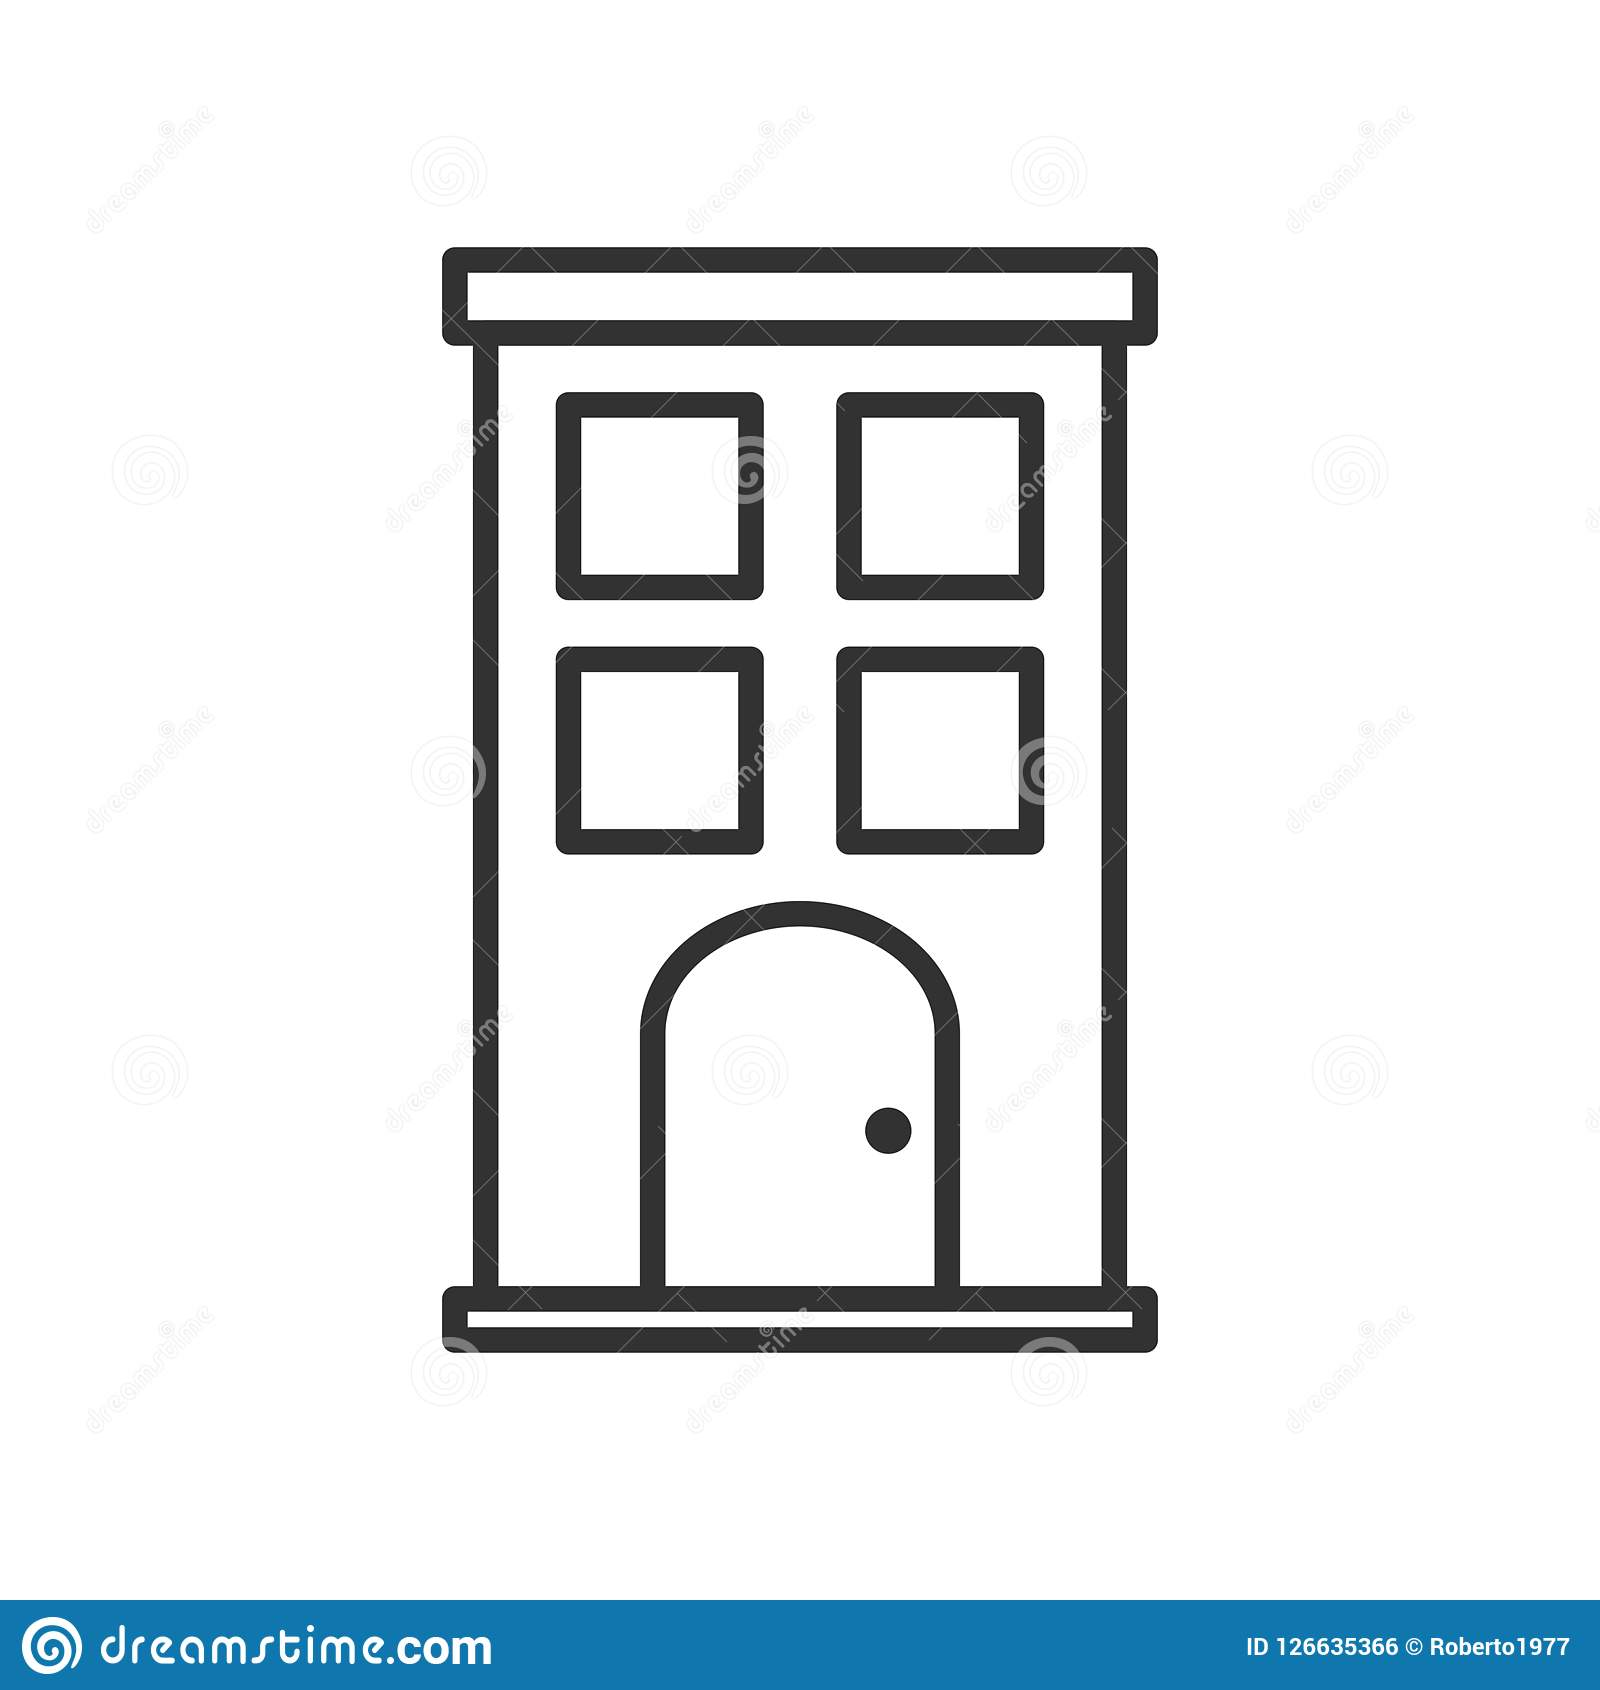 Small Building Outline Flat Icon on White